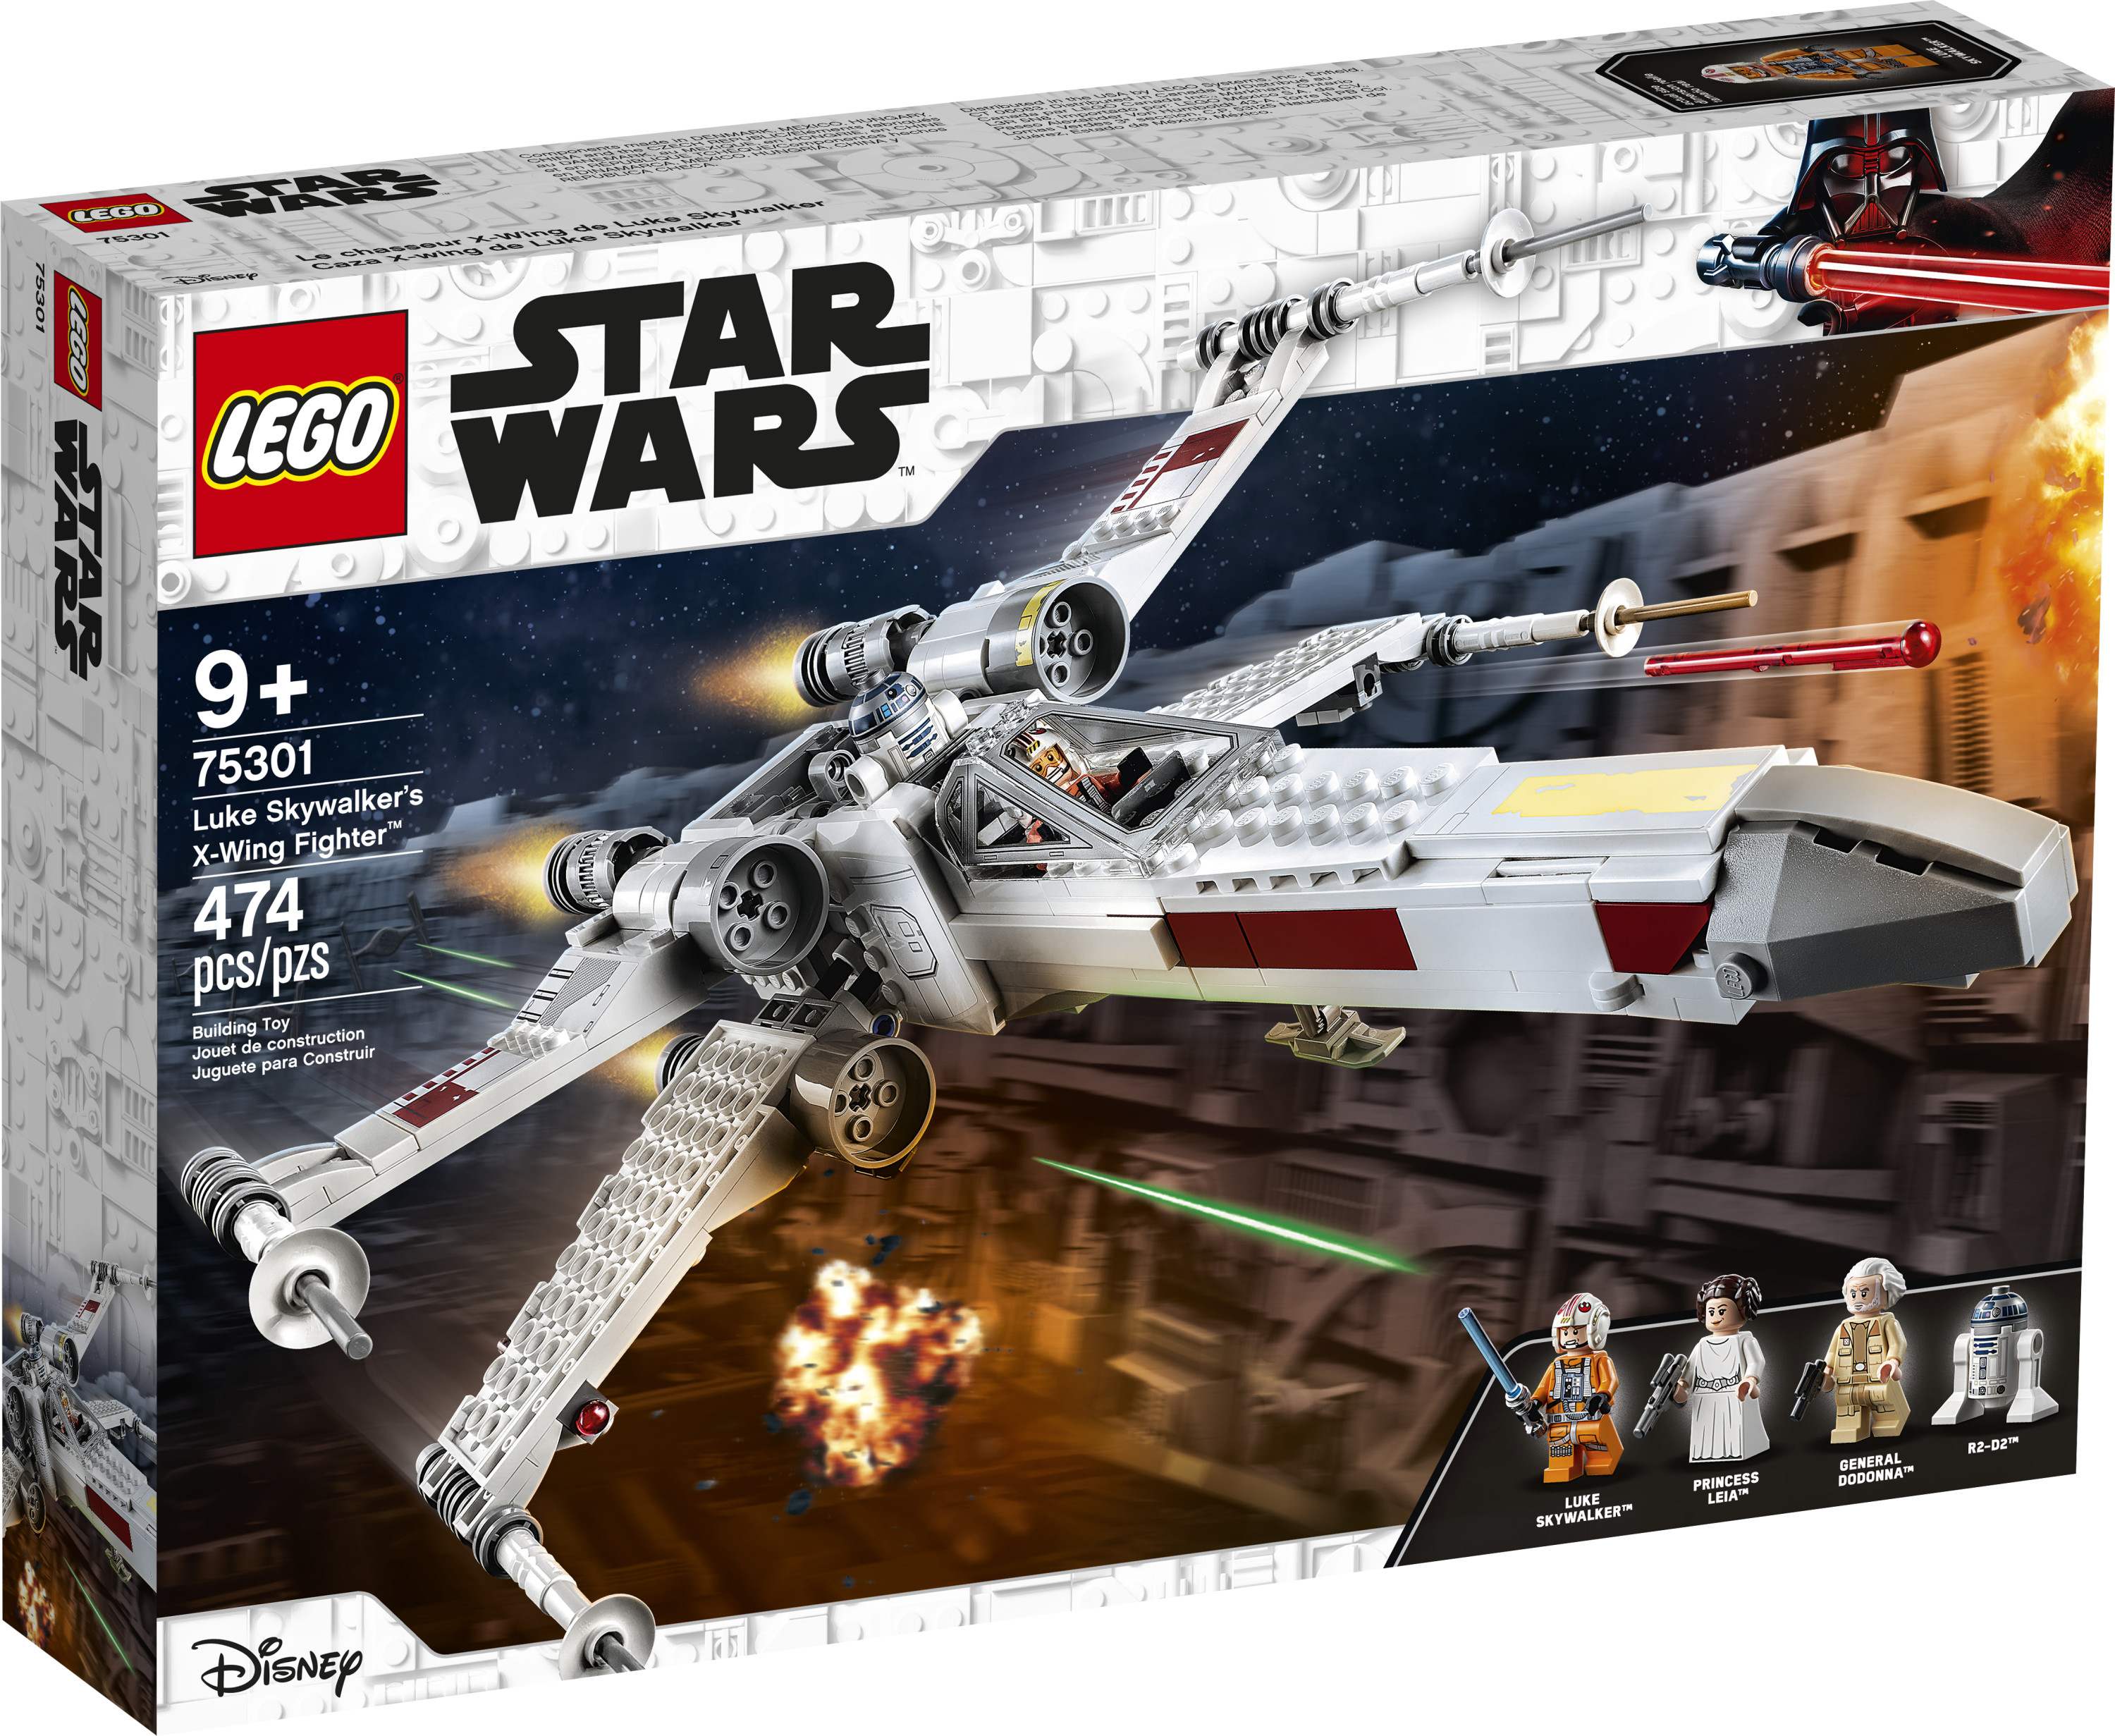 Buy Lego Star Wars Luke Skywalker S X Wing Fighter 75301 Awesome Building Toy For Kids 474 Pieces Online In Indonesia 722806422